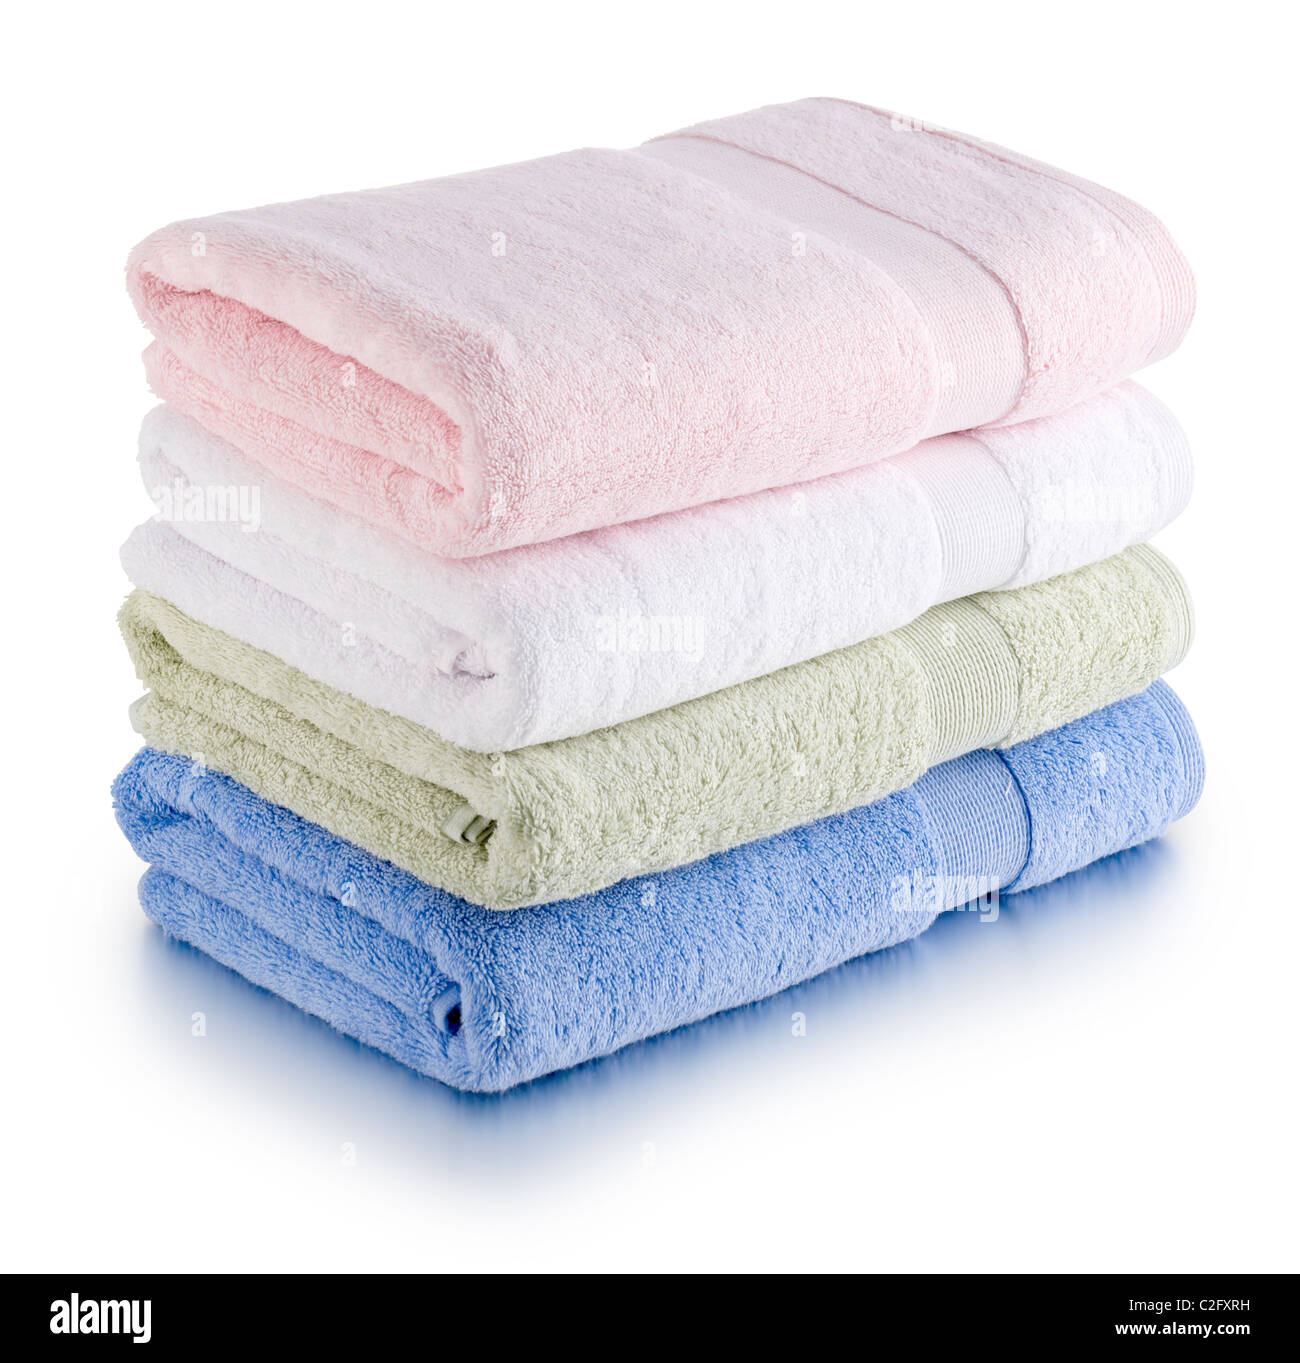 stack of colored towels - Stock Image